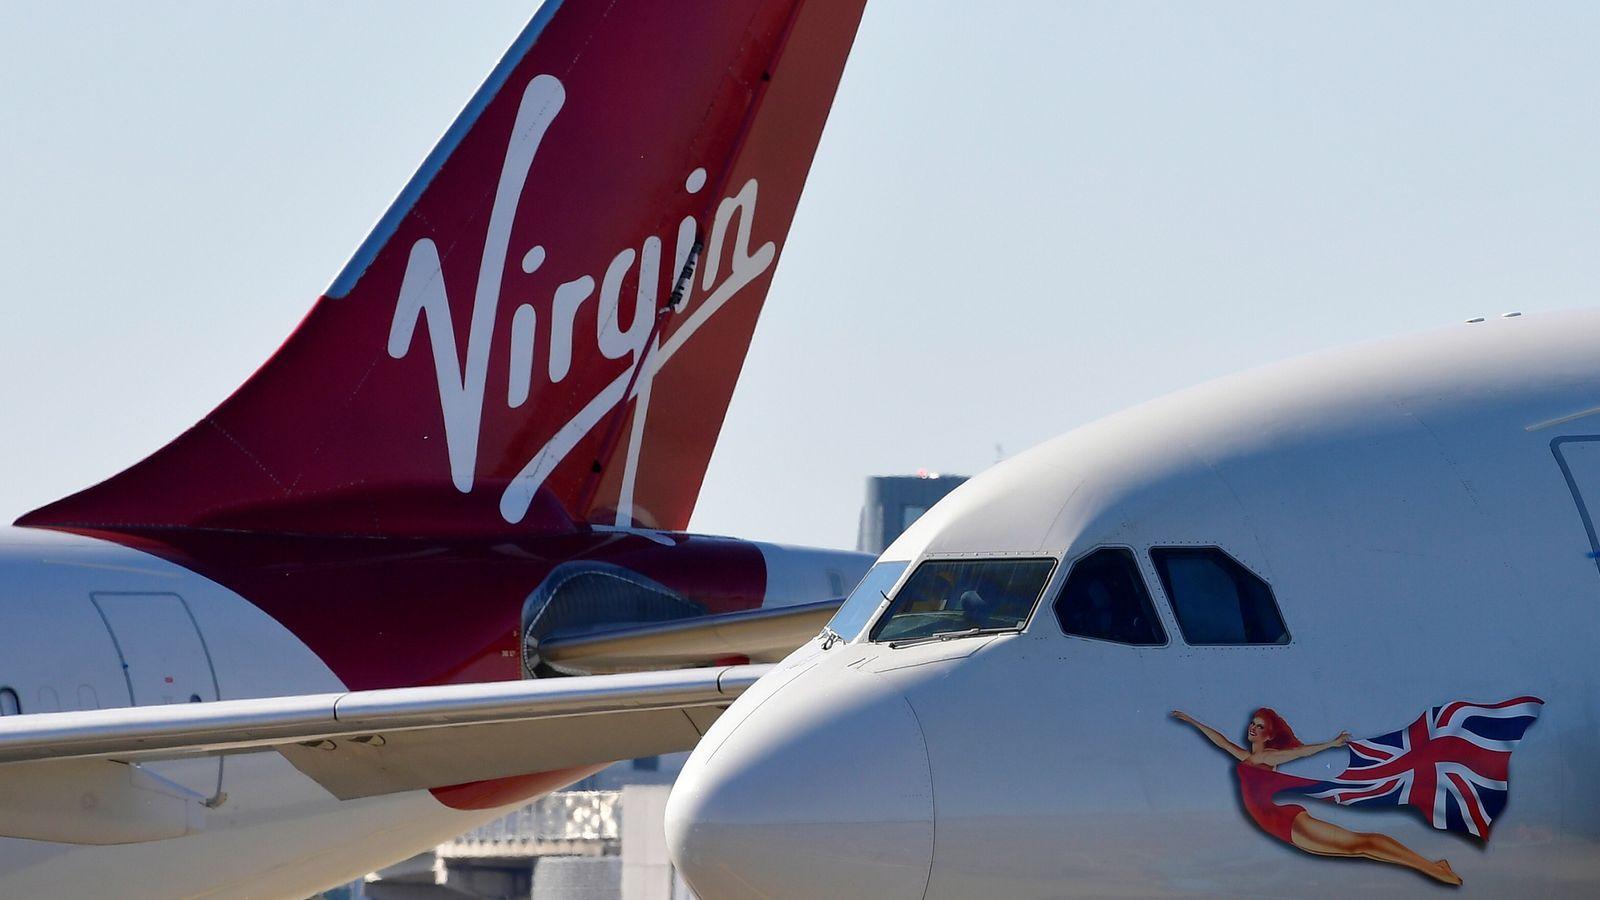 COVID-19: Virgin Atlantic boss expecting increased demand for air travel in coming months